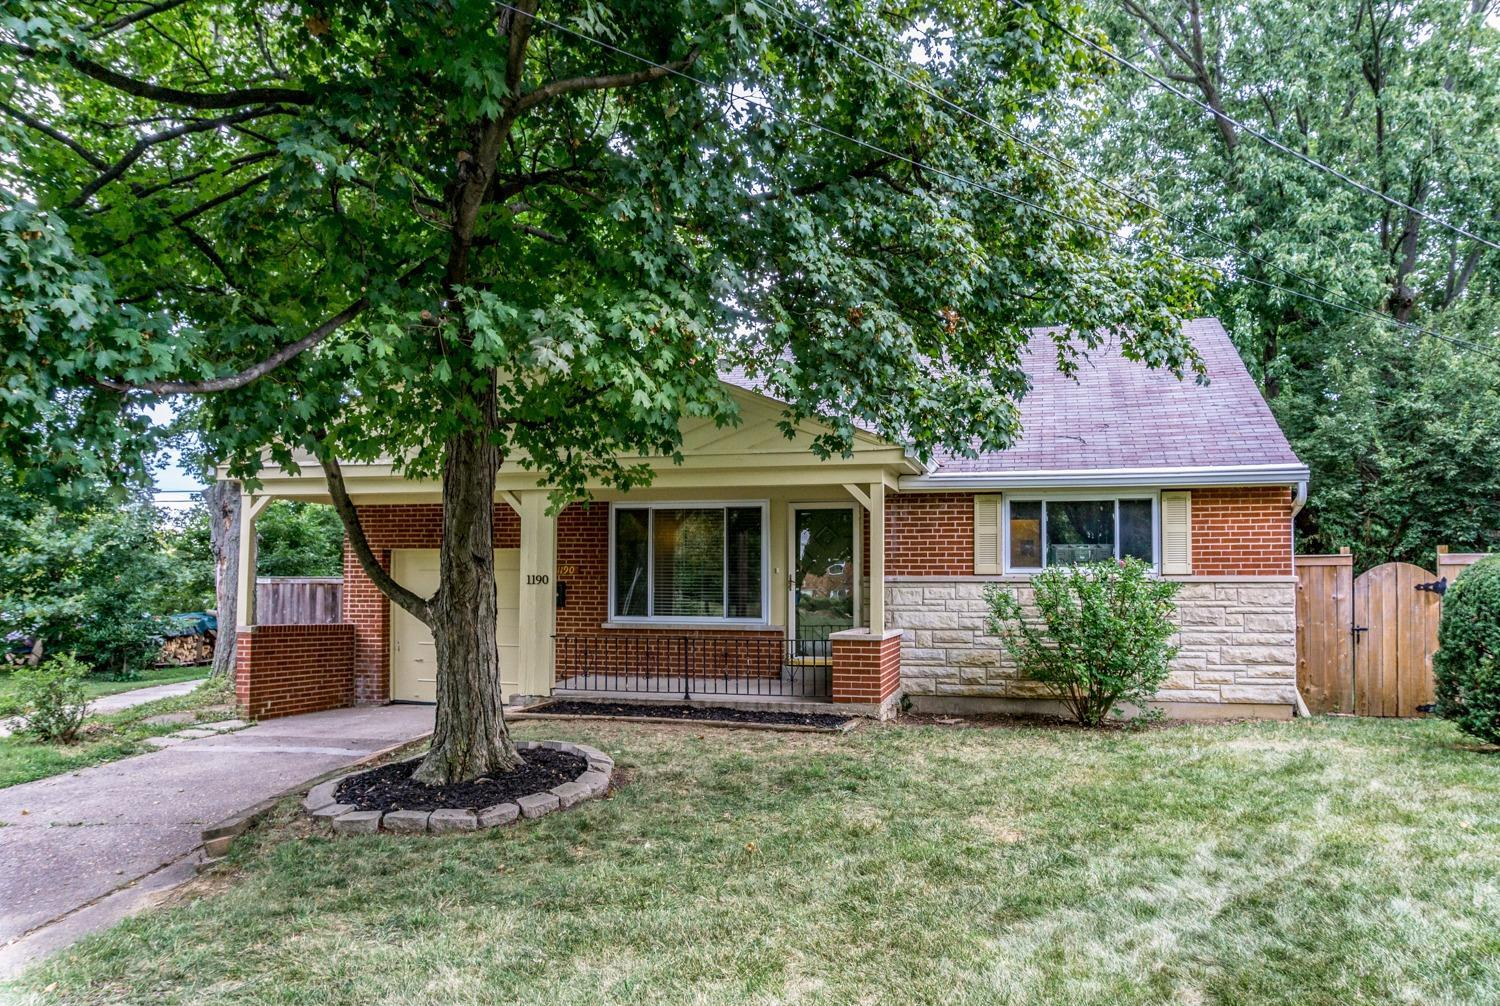 1190 Coralsea Dr Anderson Twp Oh Mls 1549910 Better